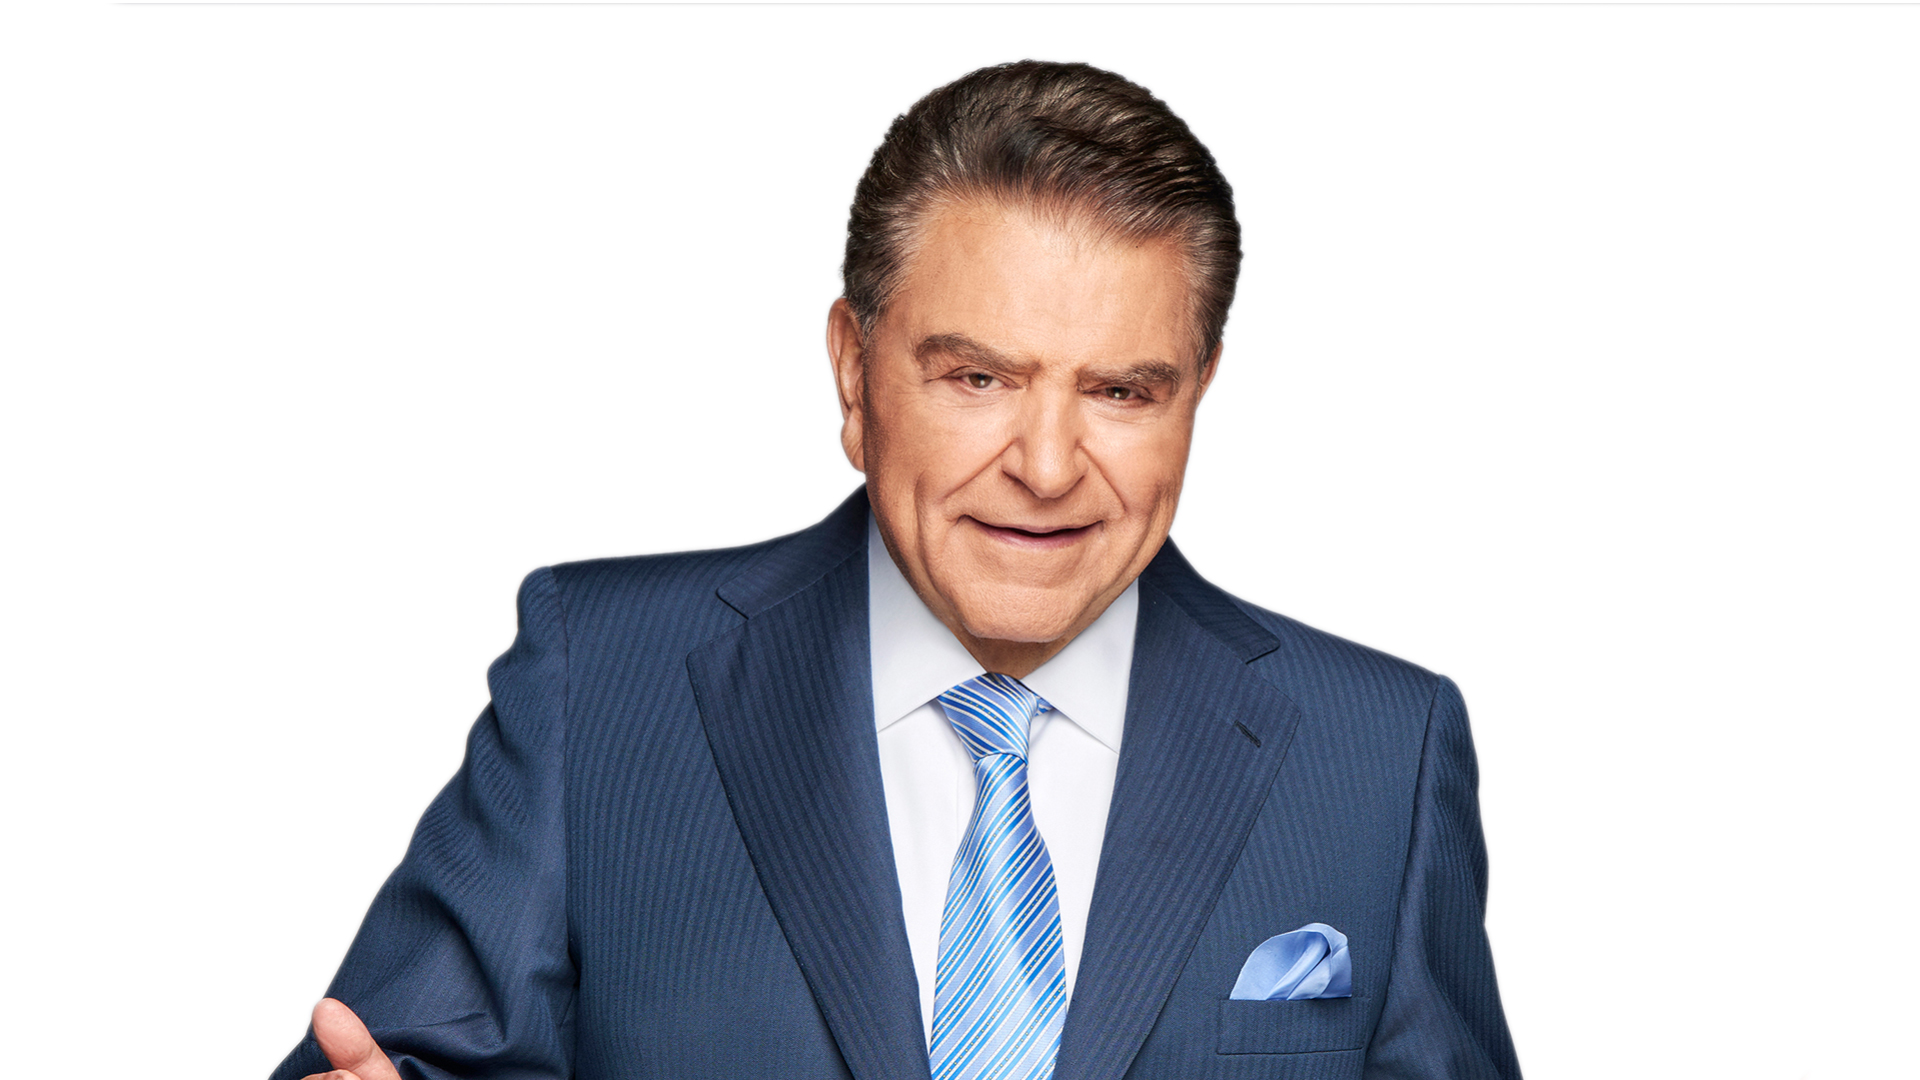 http://www.telemundo.com/sites/nbcutelemundo/files/images/promo/persons/2017/05/16/don_francisco.jpg